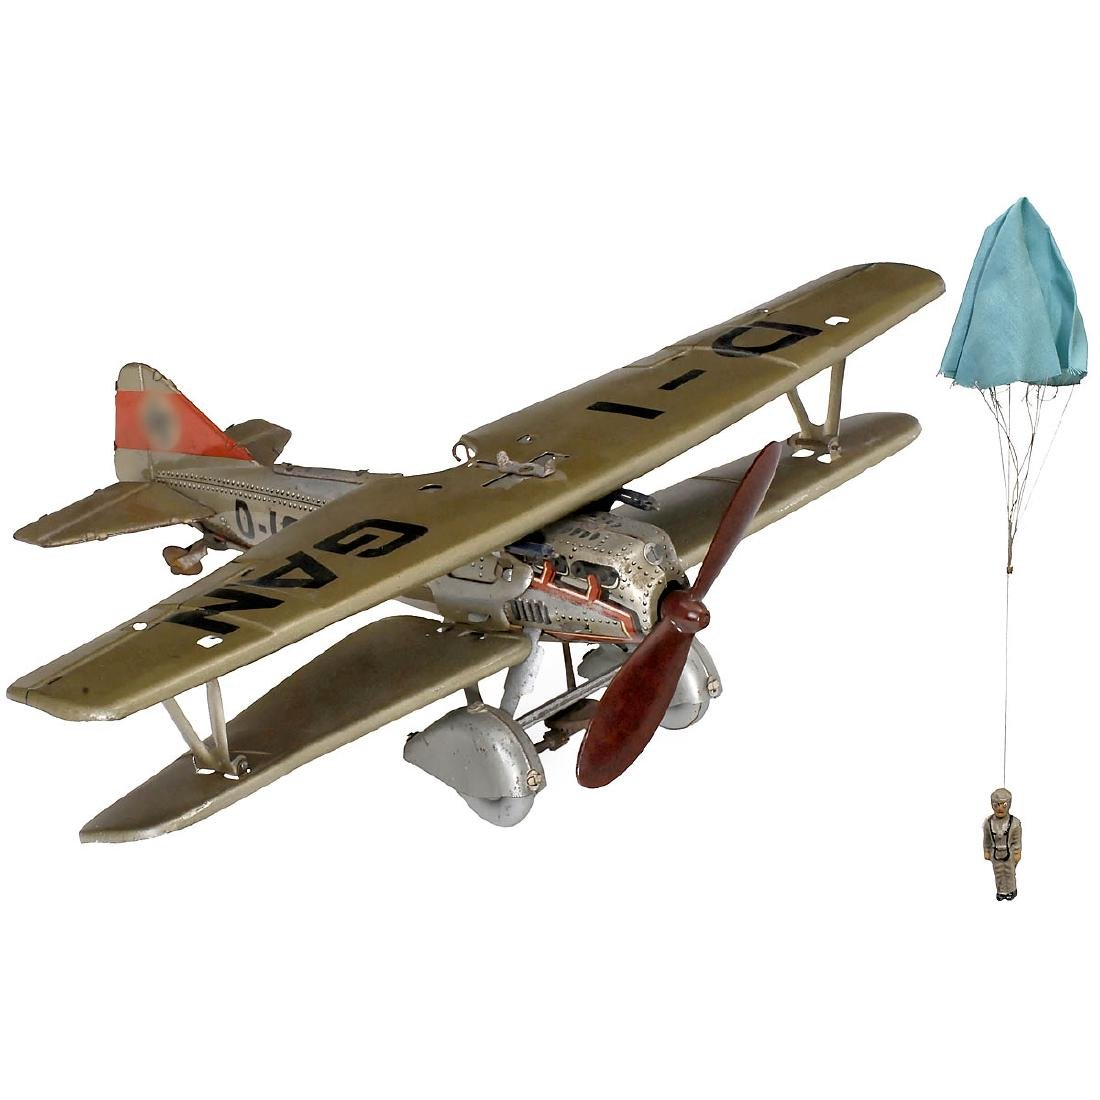 Tippco Biplane D-IGAN with Ejection Seat No. 028, c.